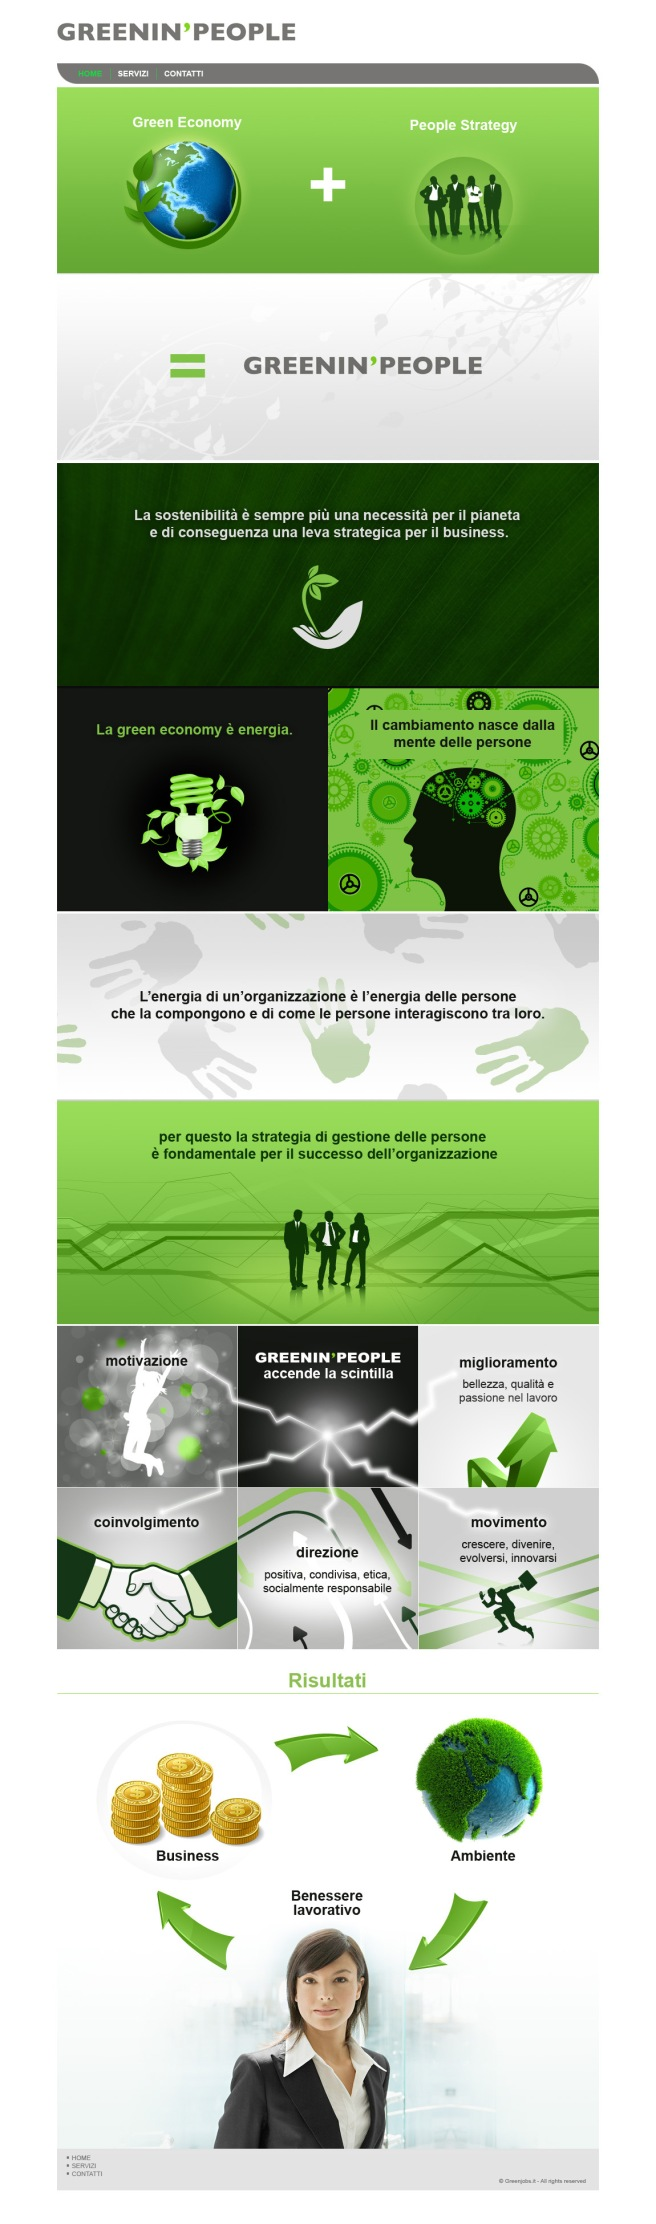 Infografica Greenin'People